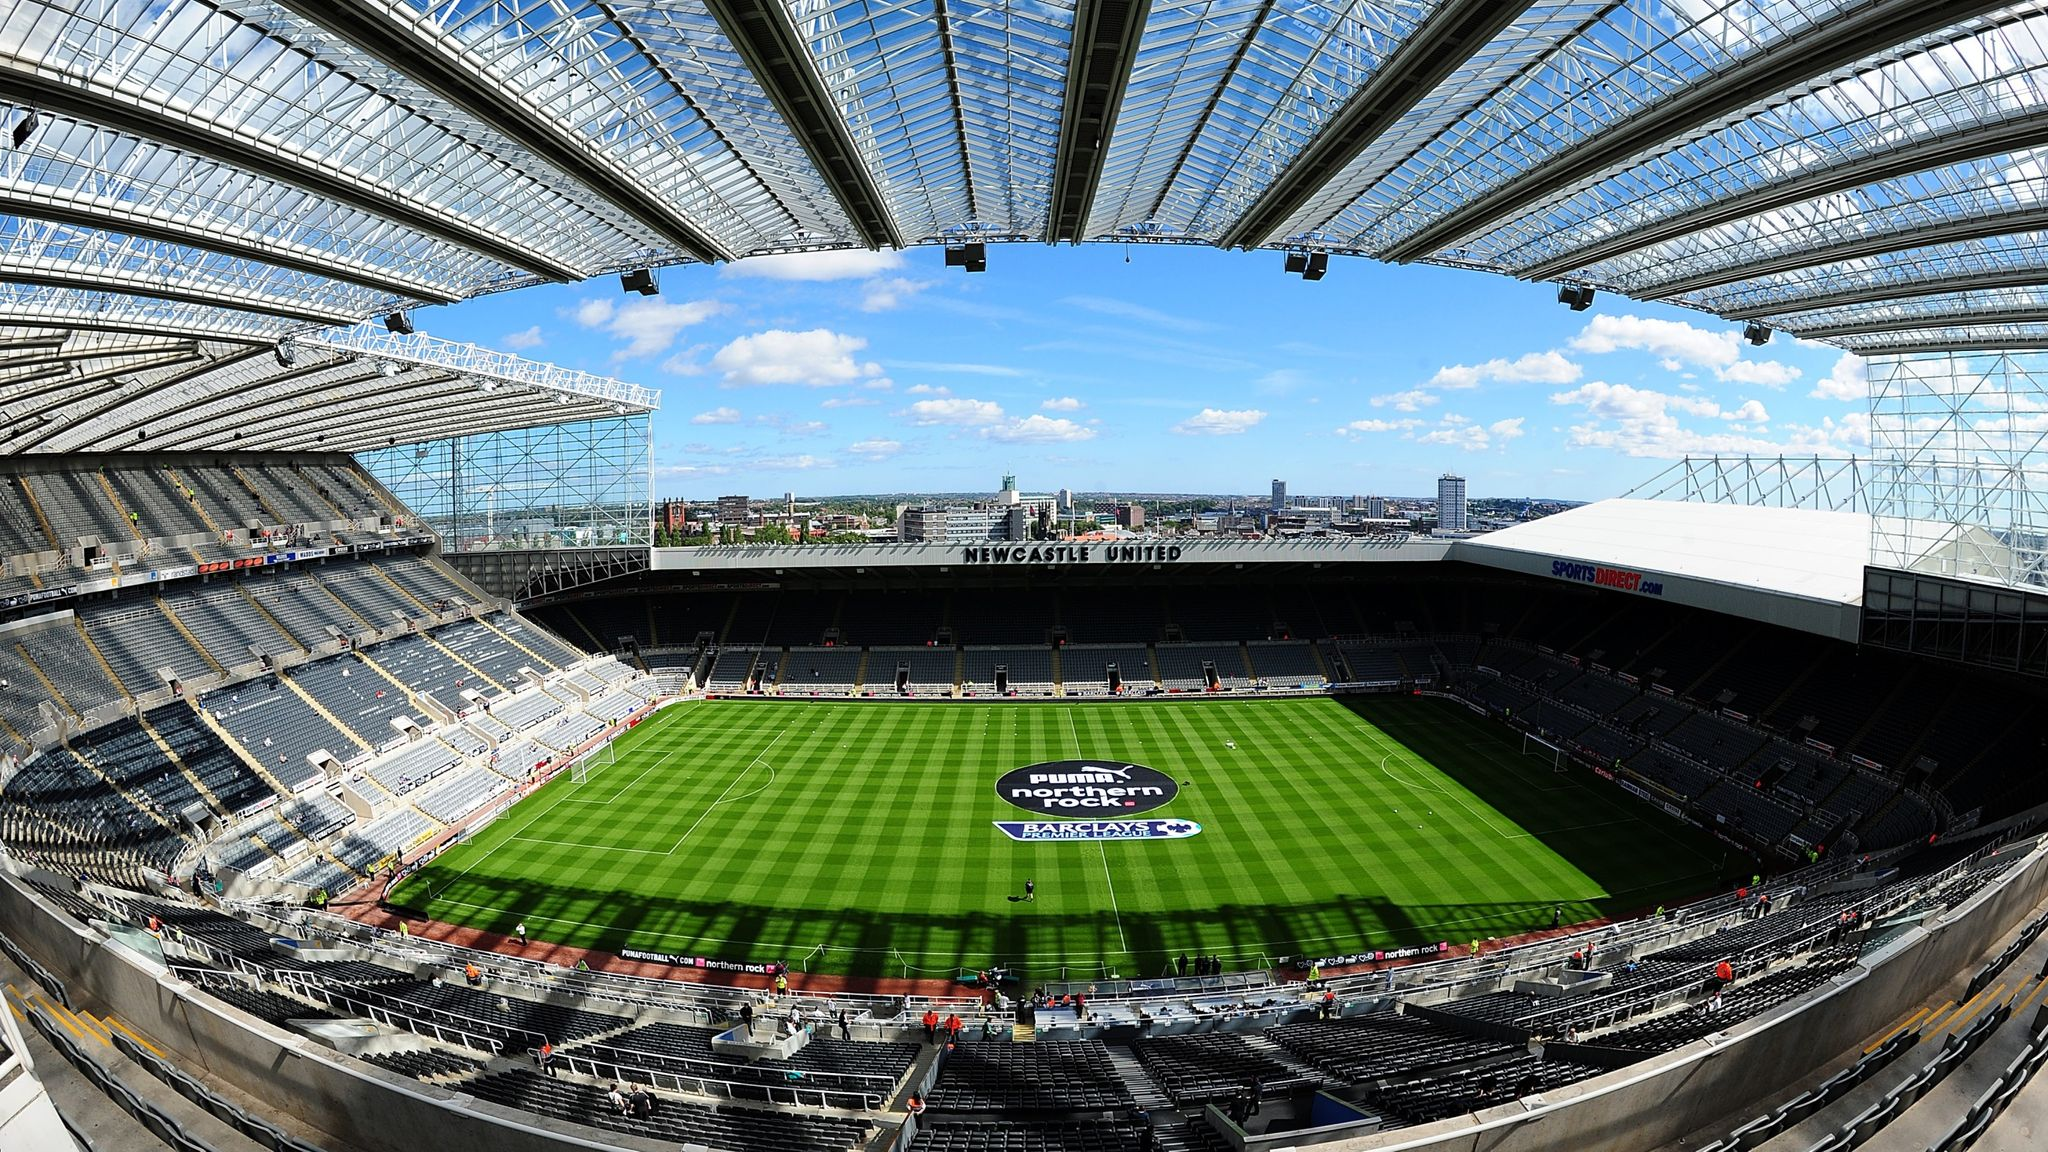 Newcastle Takeover Broadcaster Bein Sport Urges Premier League To Block Sale Football News Sky Sports